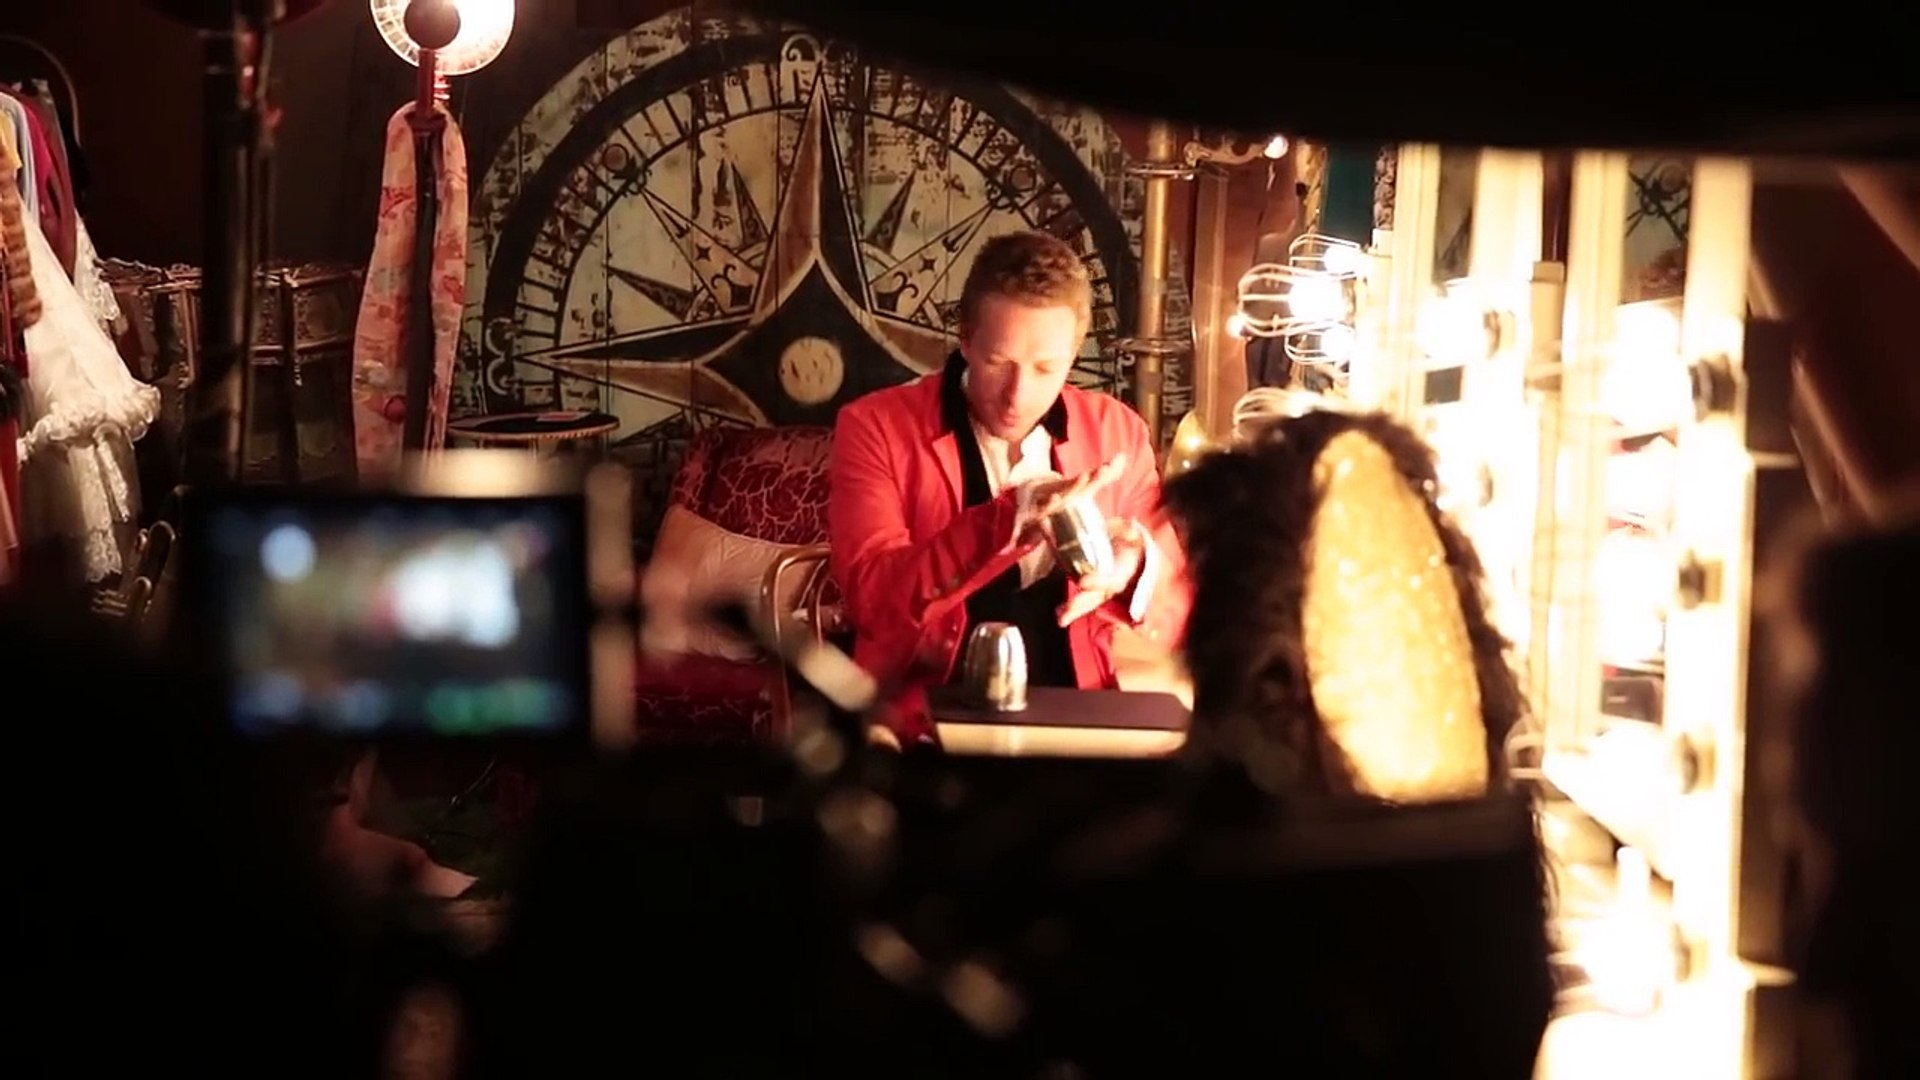 Coldplay - Magic Behind The Scenes